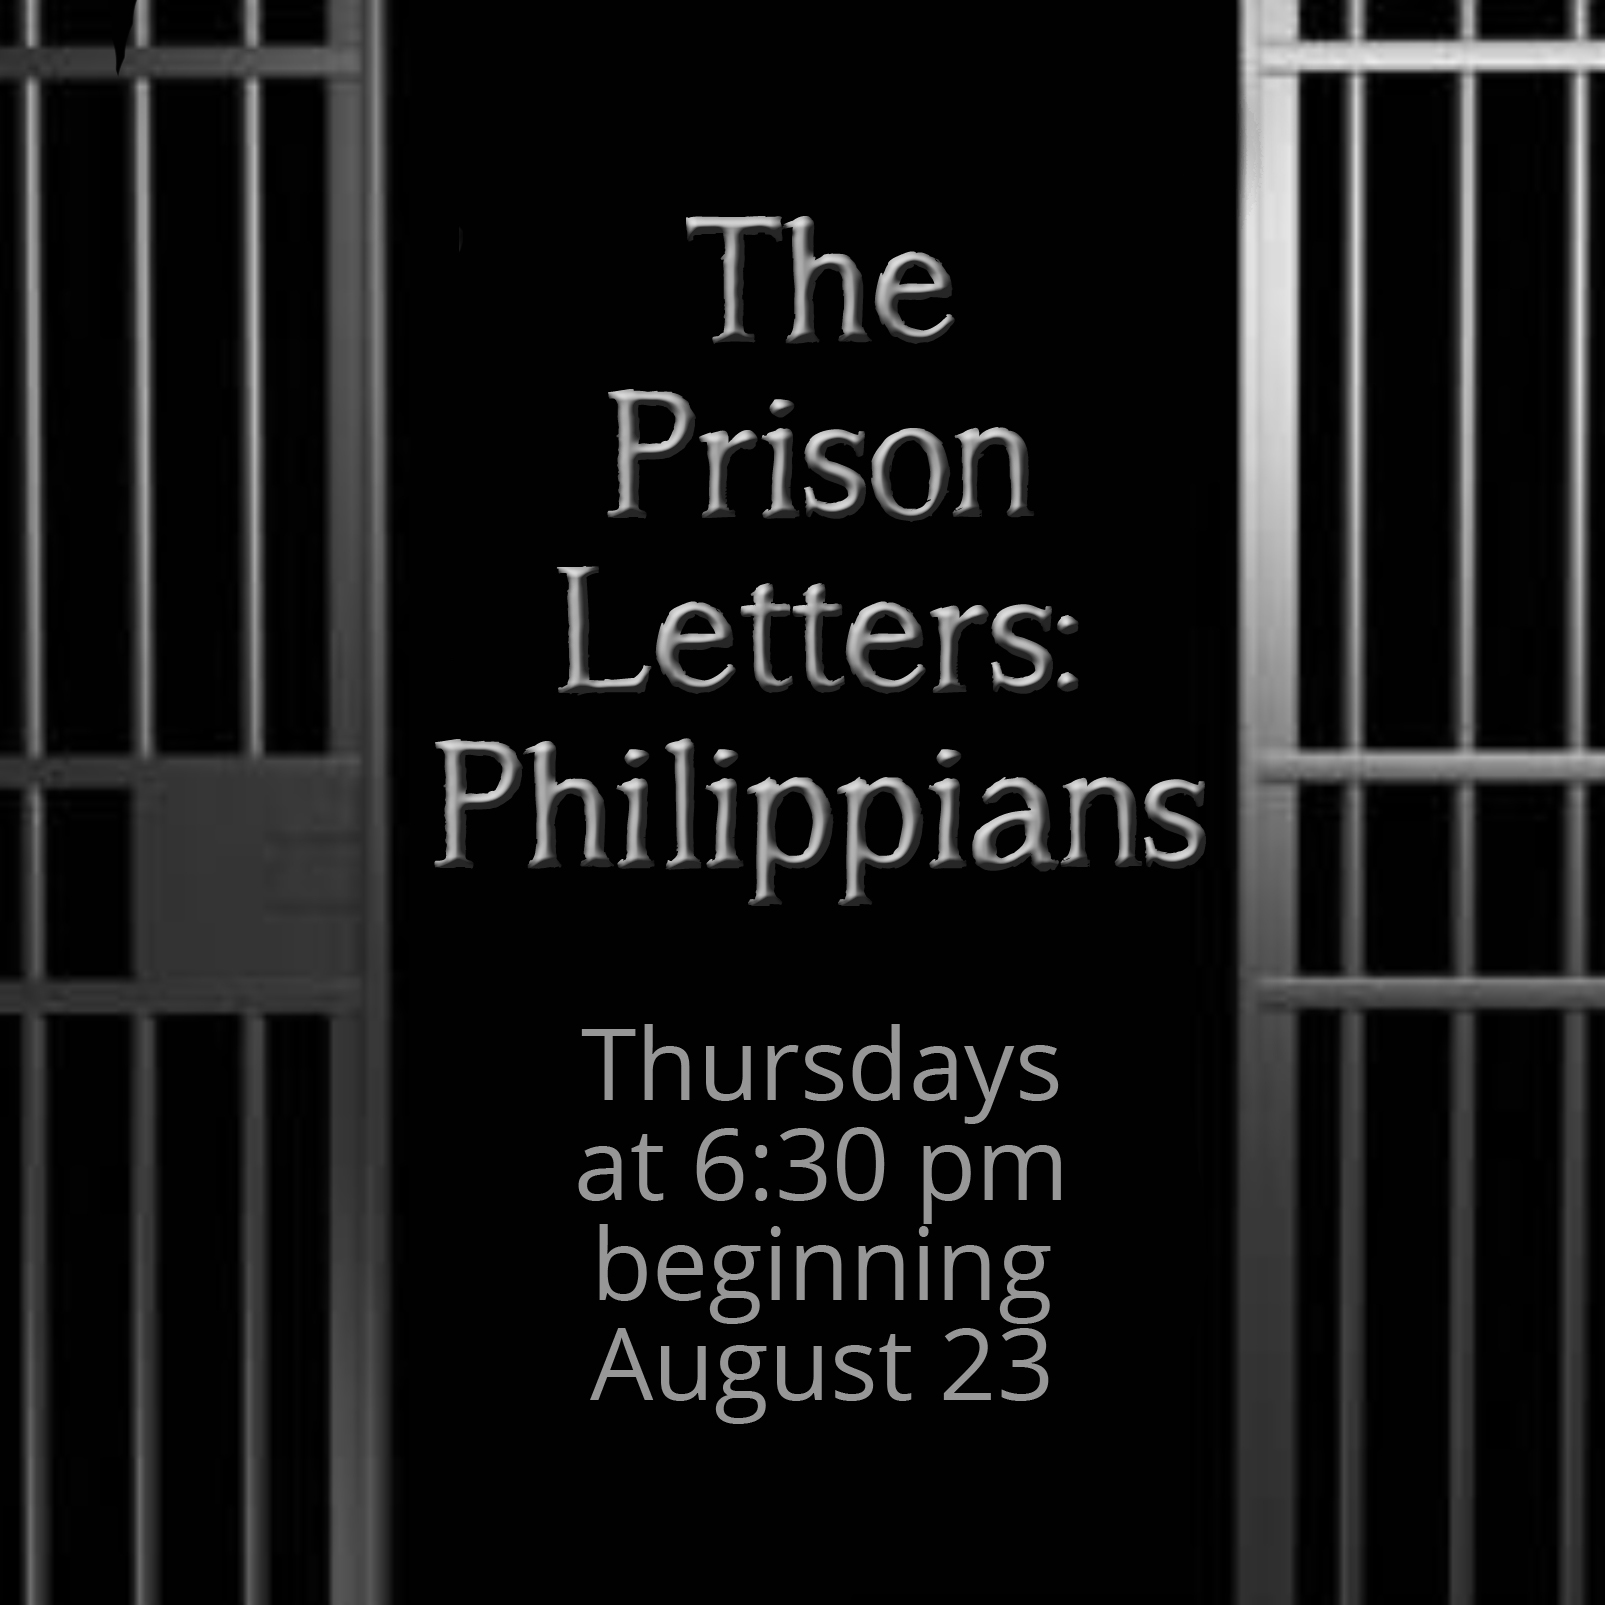 Letters from prison bible study 1